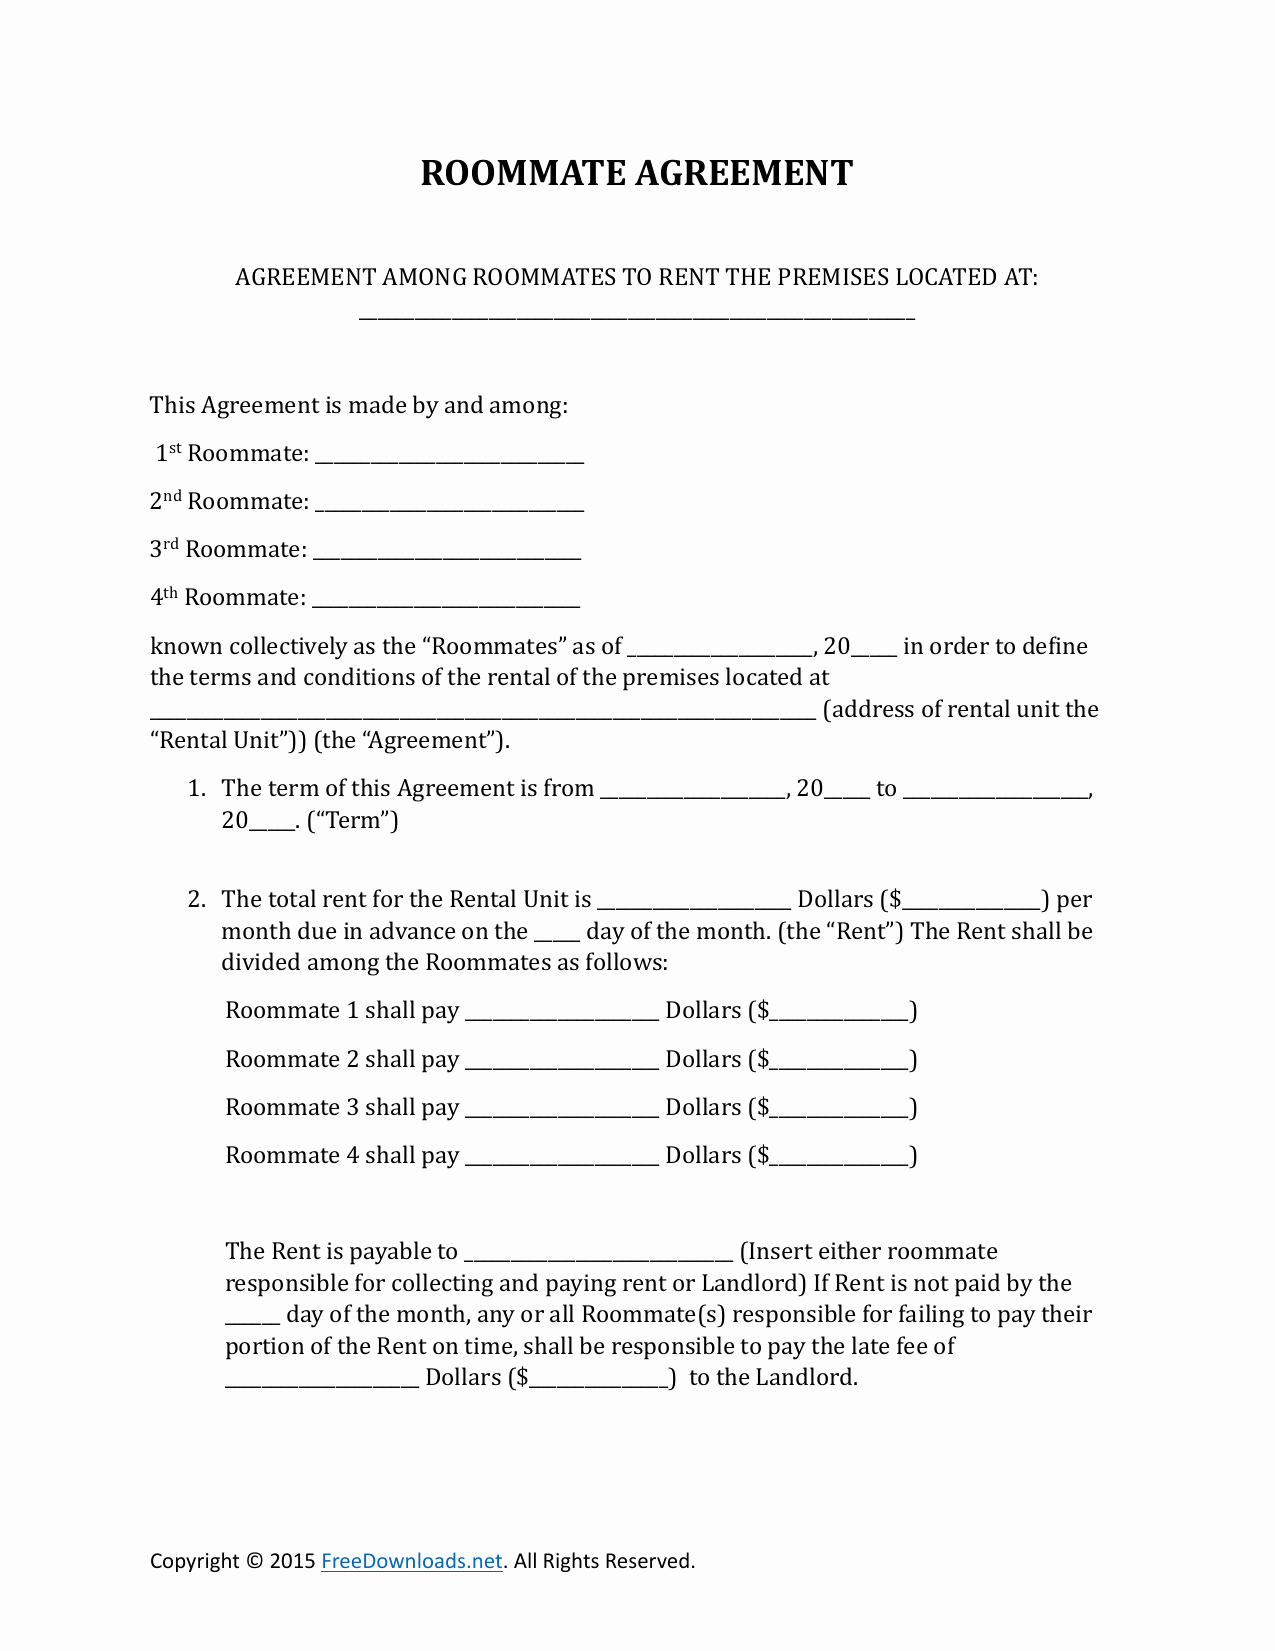 Roommate Rental Agreement Template Elegant Download Roommate Rental Lease Agreement form Pdf